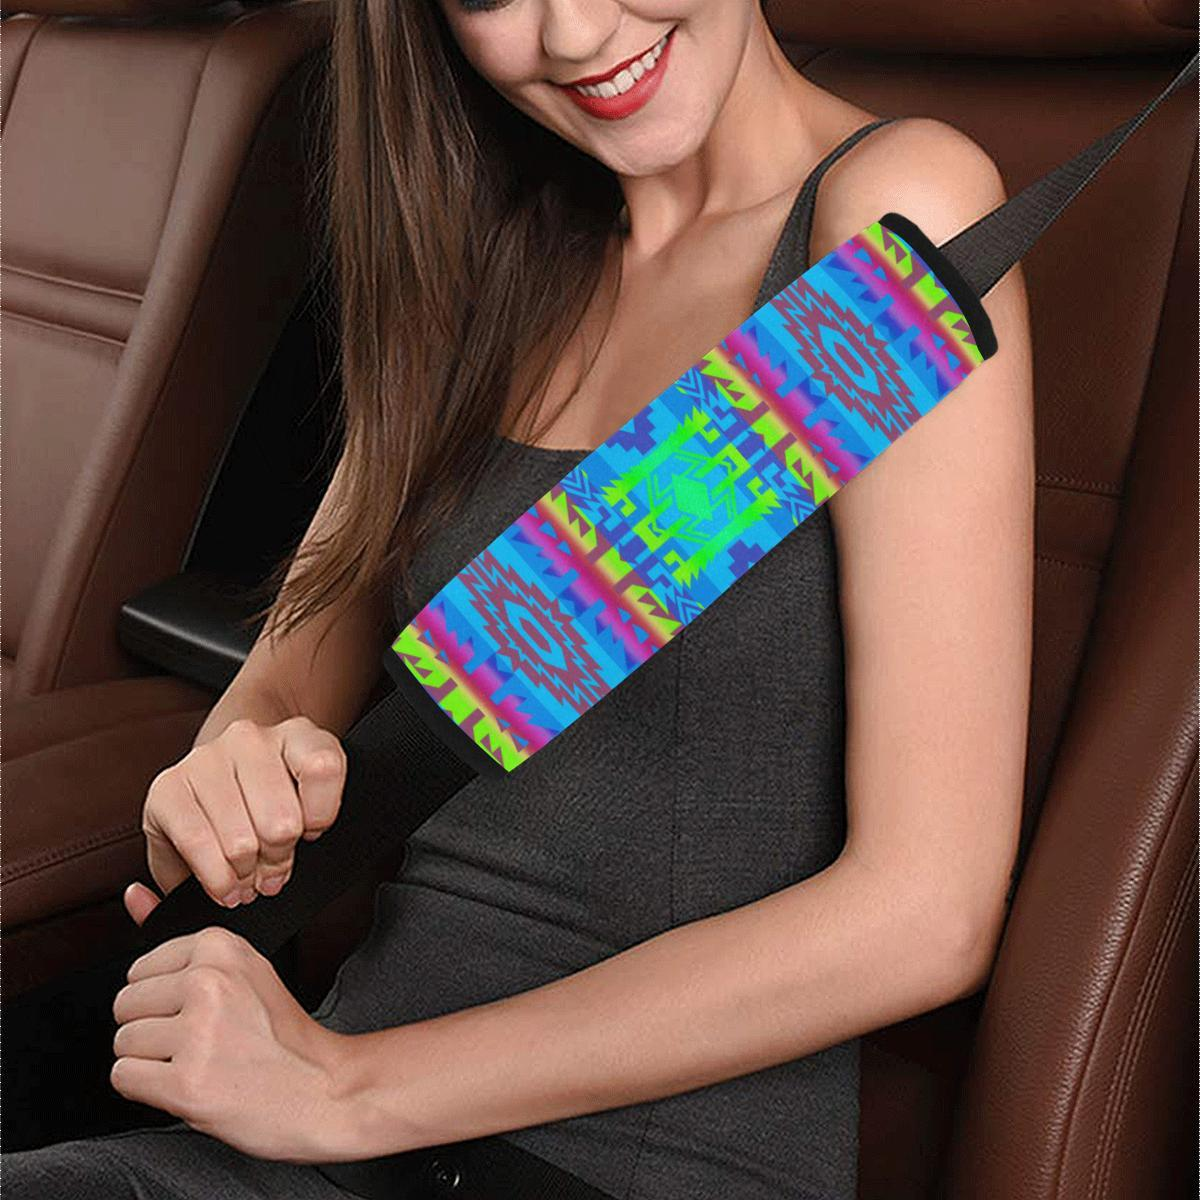 Young Journey Car Seat Belt Cover 7''x12.6'' Car Seat Belt Cover 7''x12.6'' e-joyer